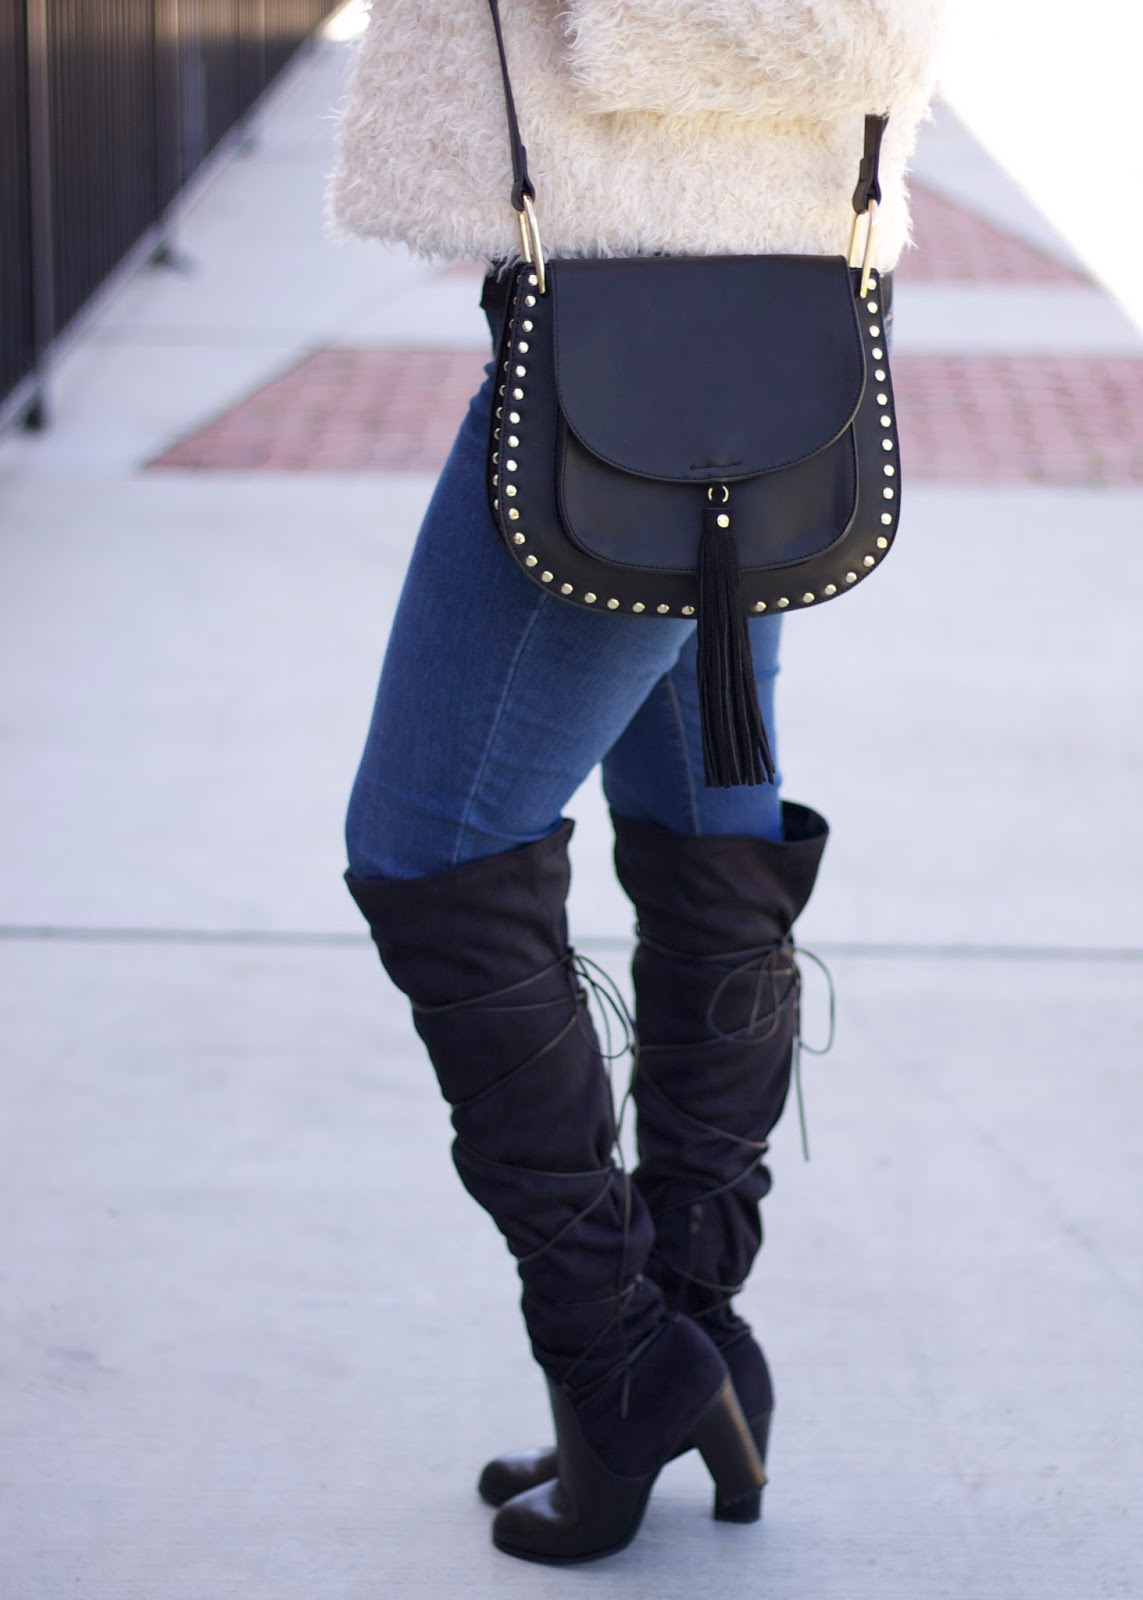 Shoedazzle rayne boots, over the knee boots under $100, over the knee boots under $50, shoedazzle blogger, laced over the knee boots